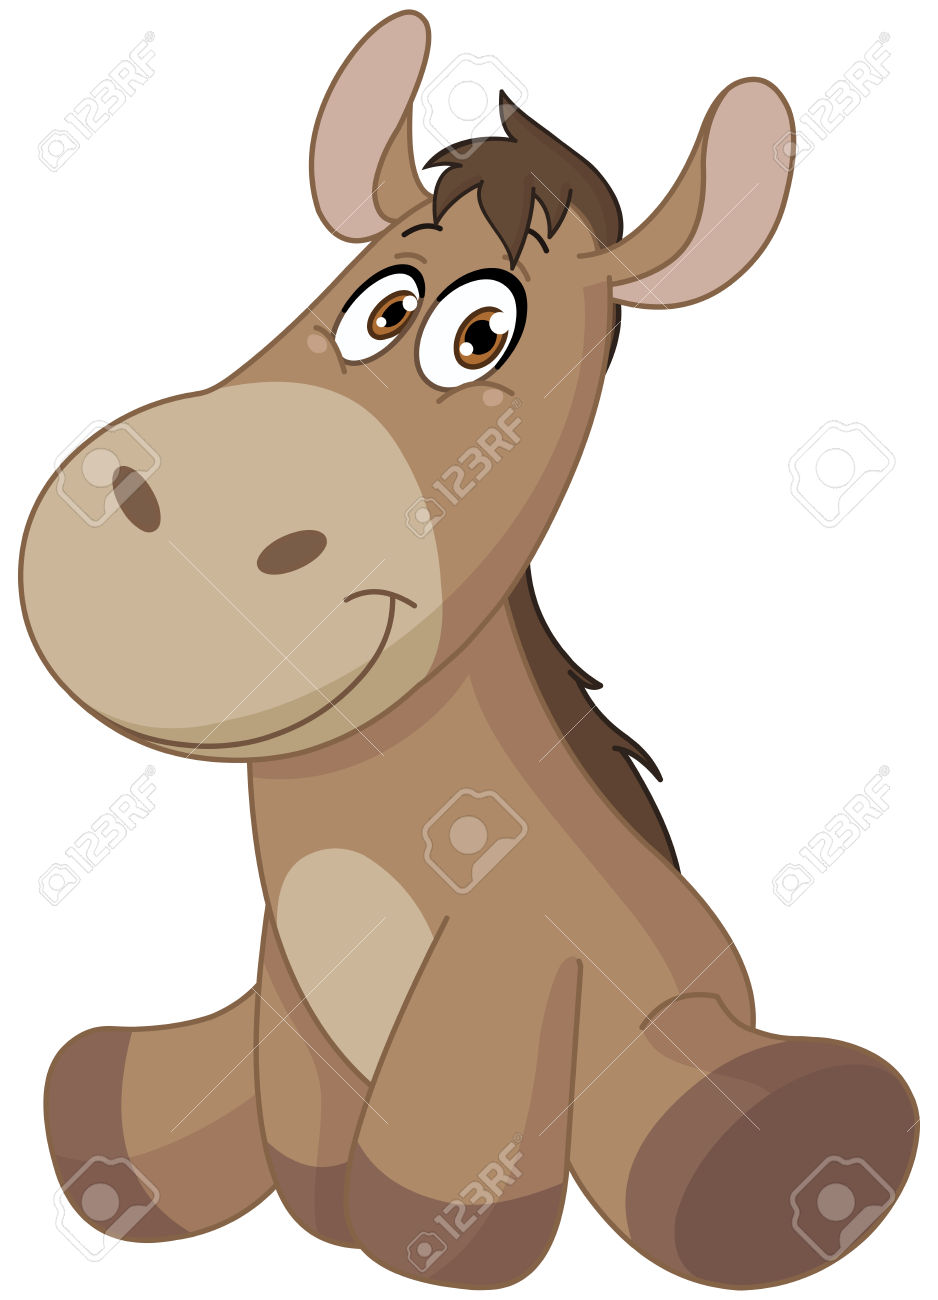 Donkey foal clipart - Clipground